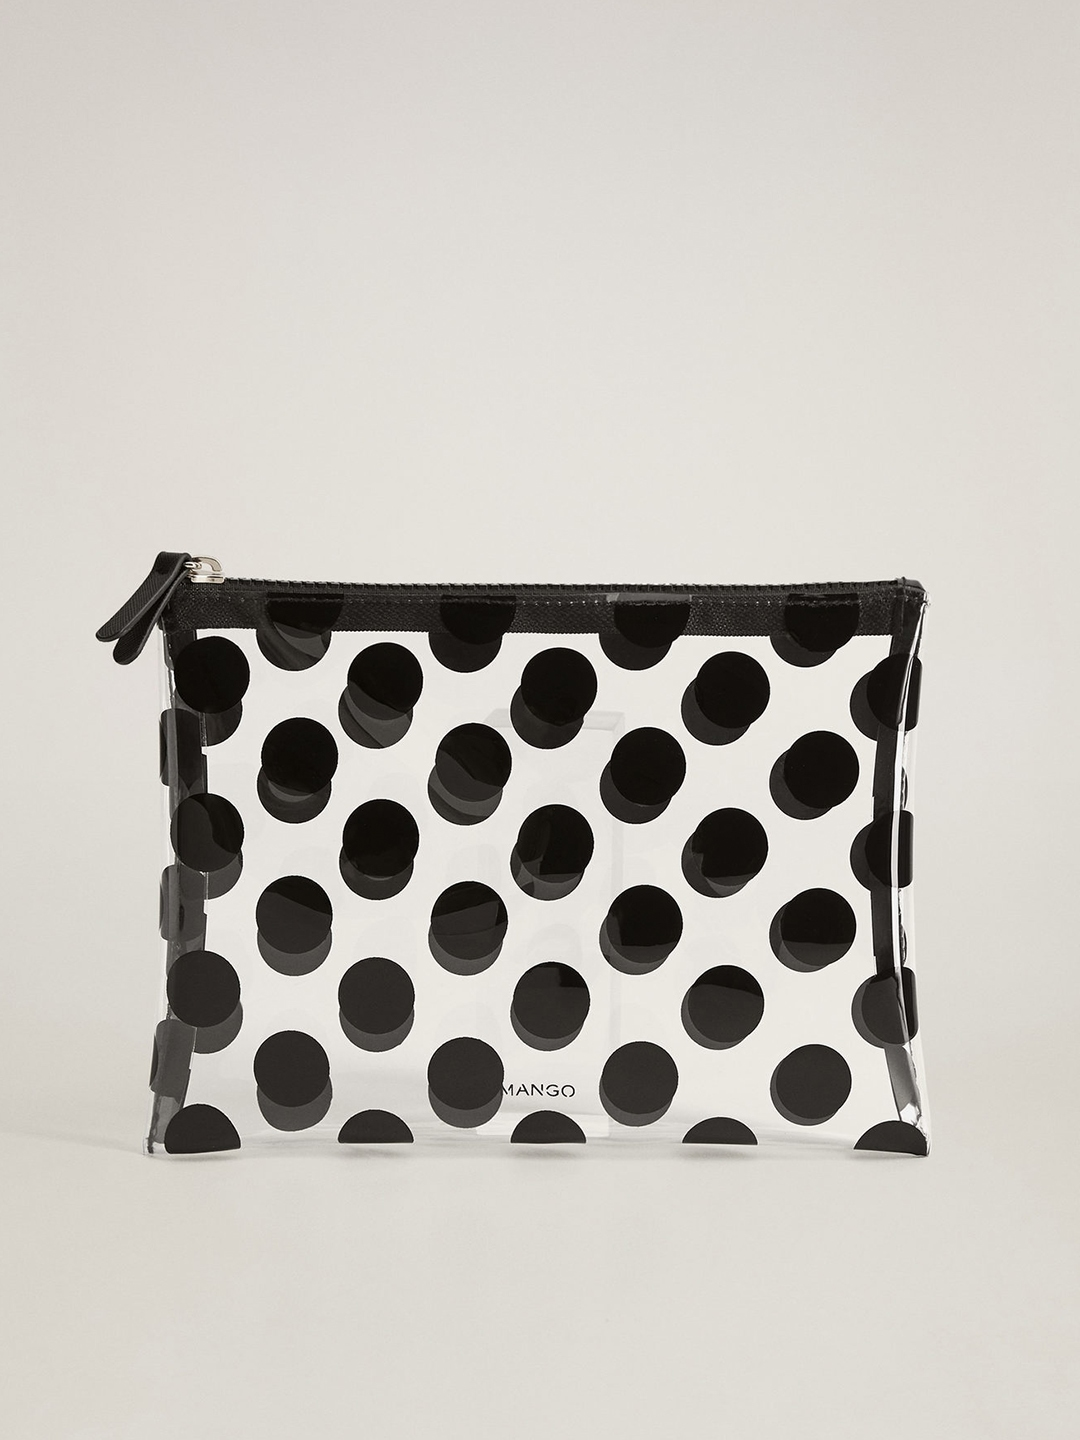 MANGO Women Transparent   Black Polka Dot Print Cosmetic Pouch